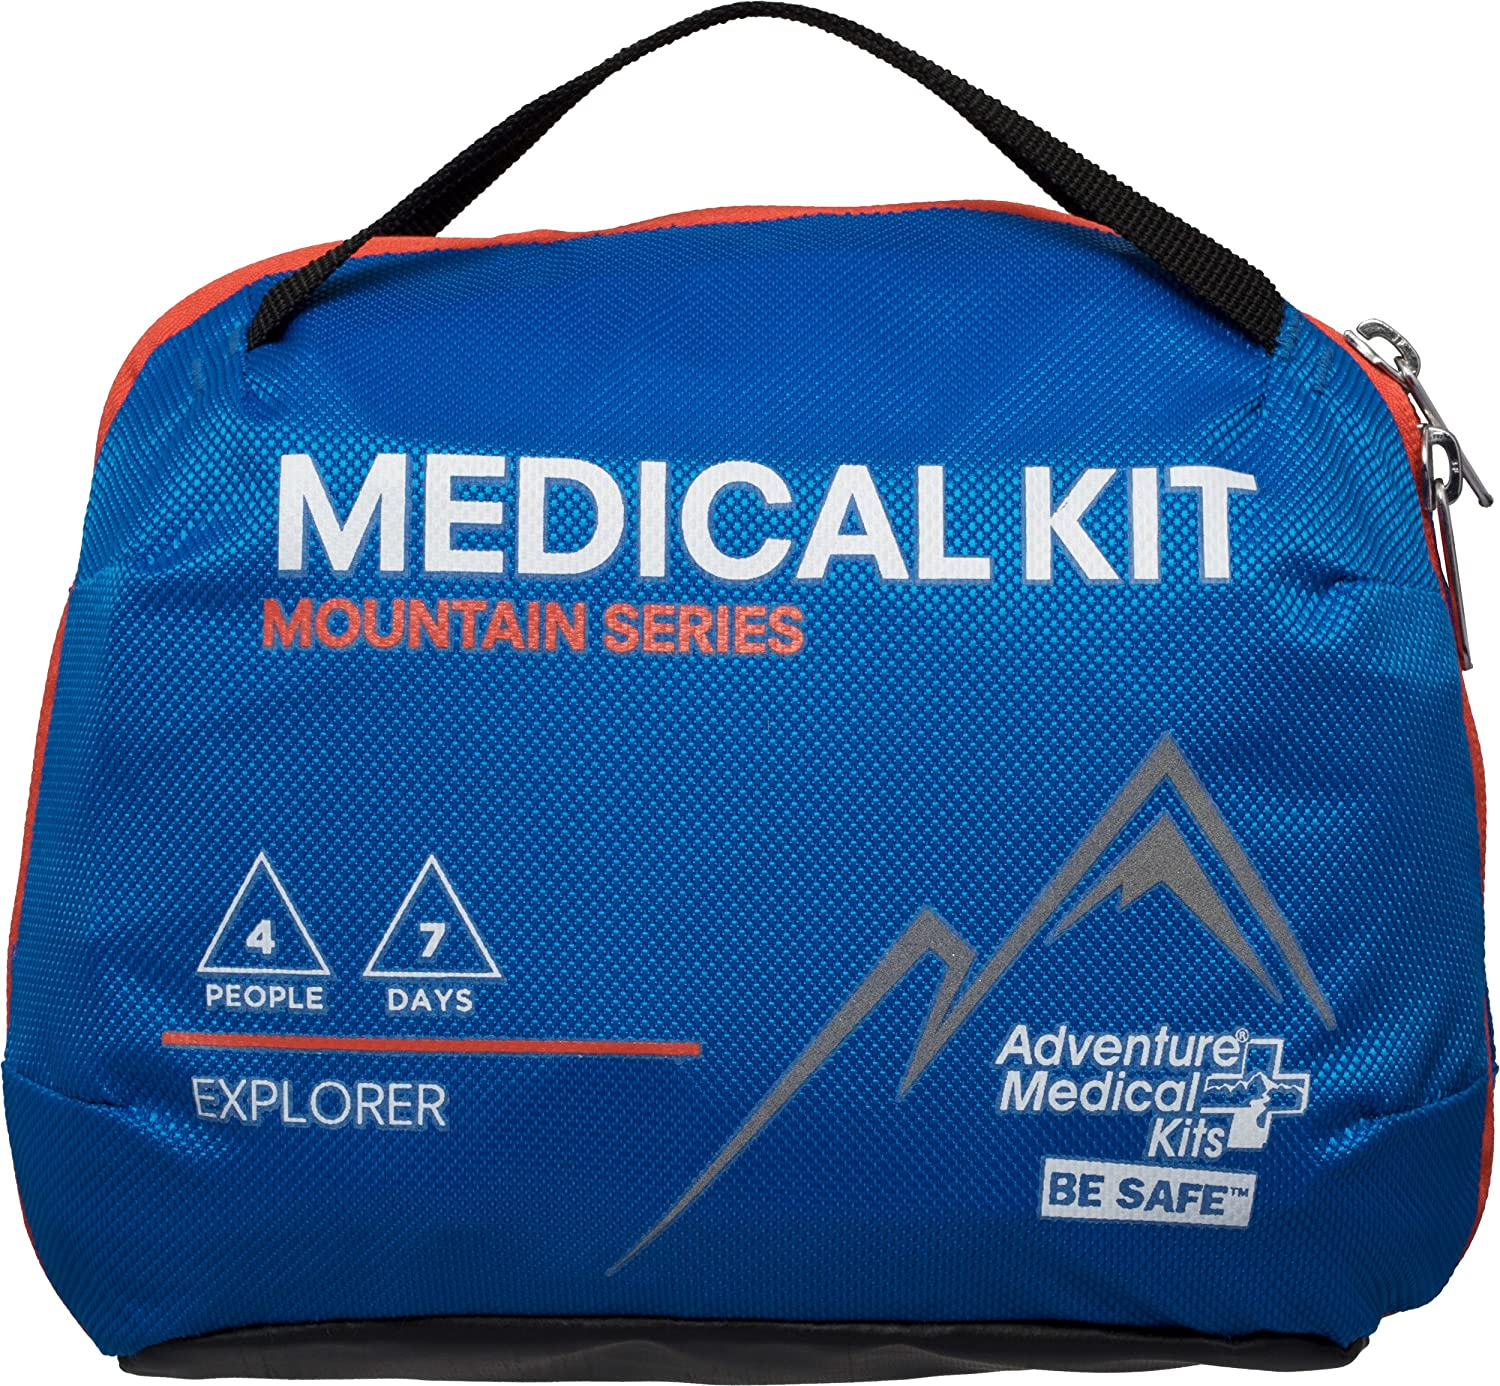 Adventure Medical Kits Mountain Series Explorer First Aid Kit - 111 Pieces: Sports & Outdoors